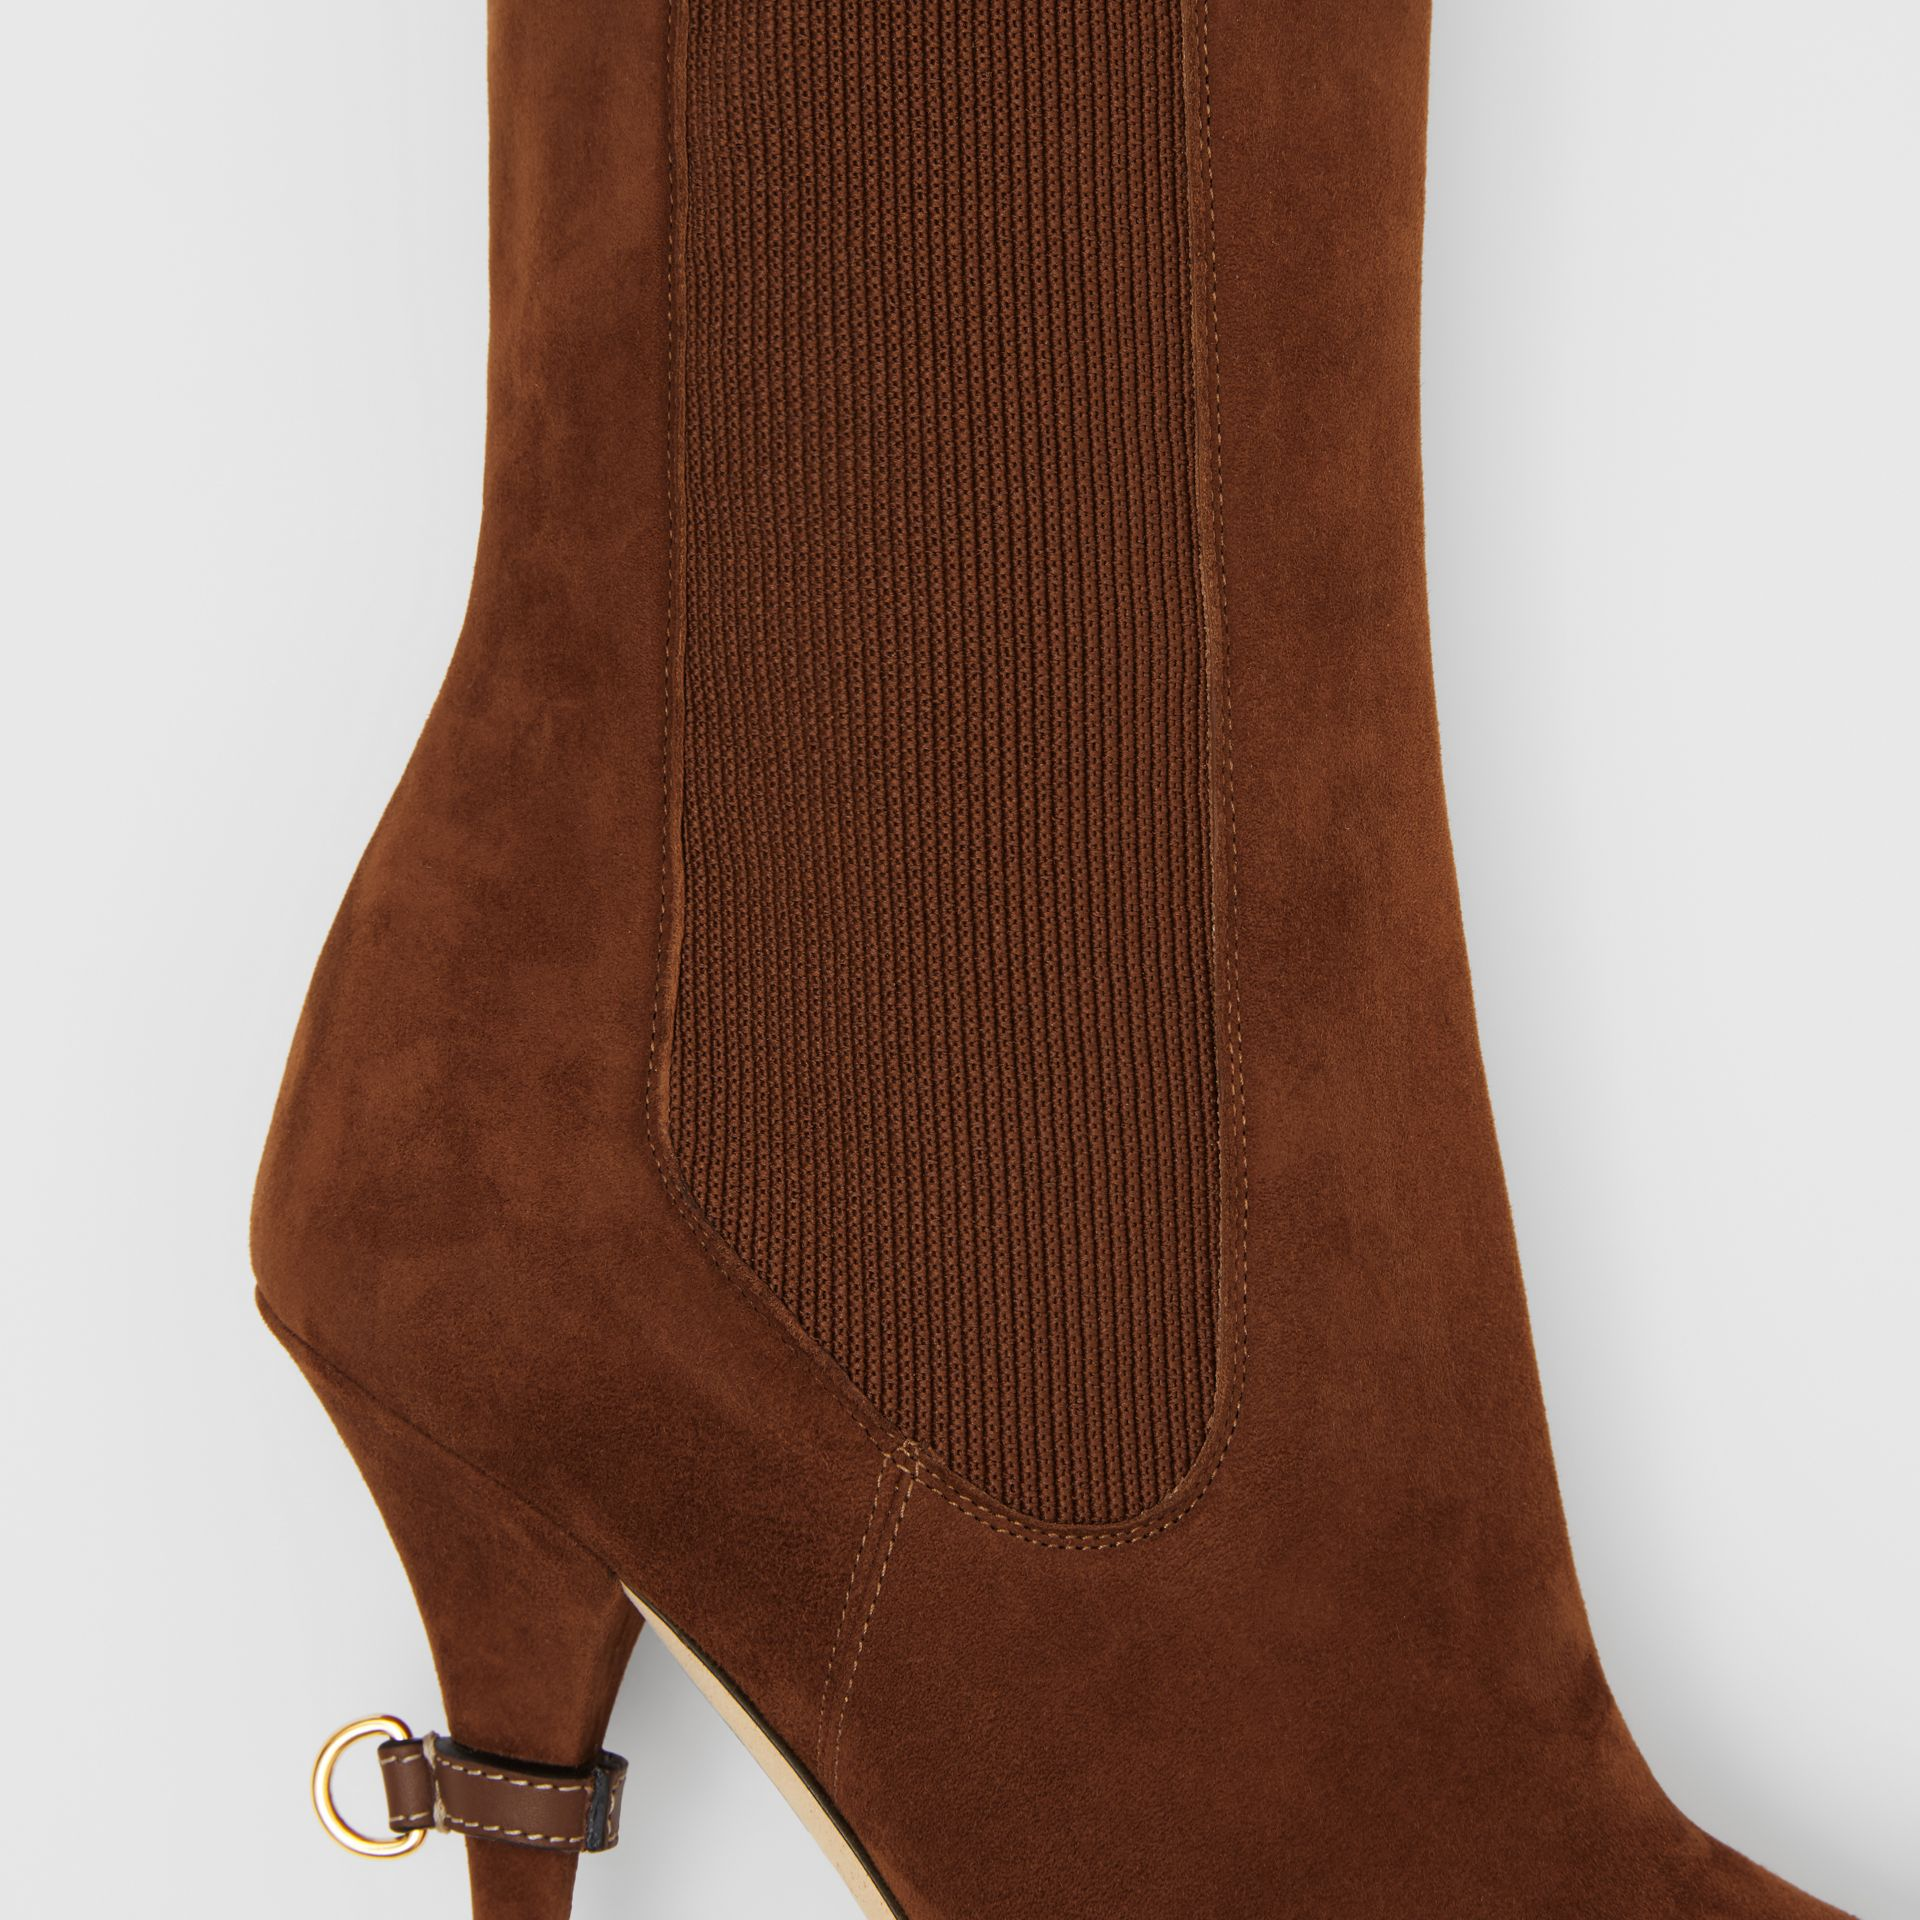 D-ring Detail Suede Ankle Boots in Tan - Women | Burberry United States - gallery image 1